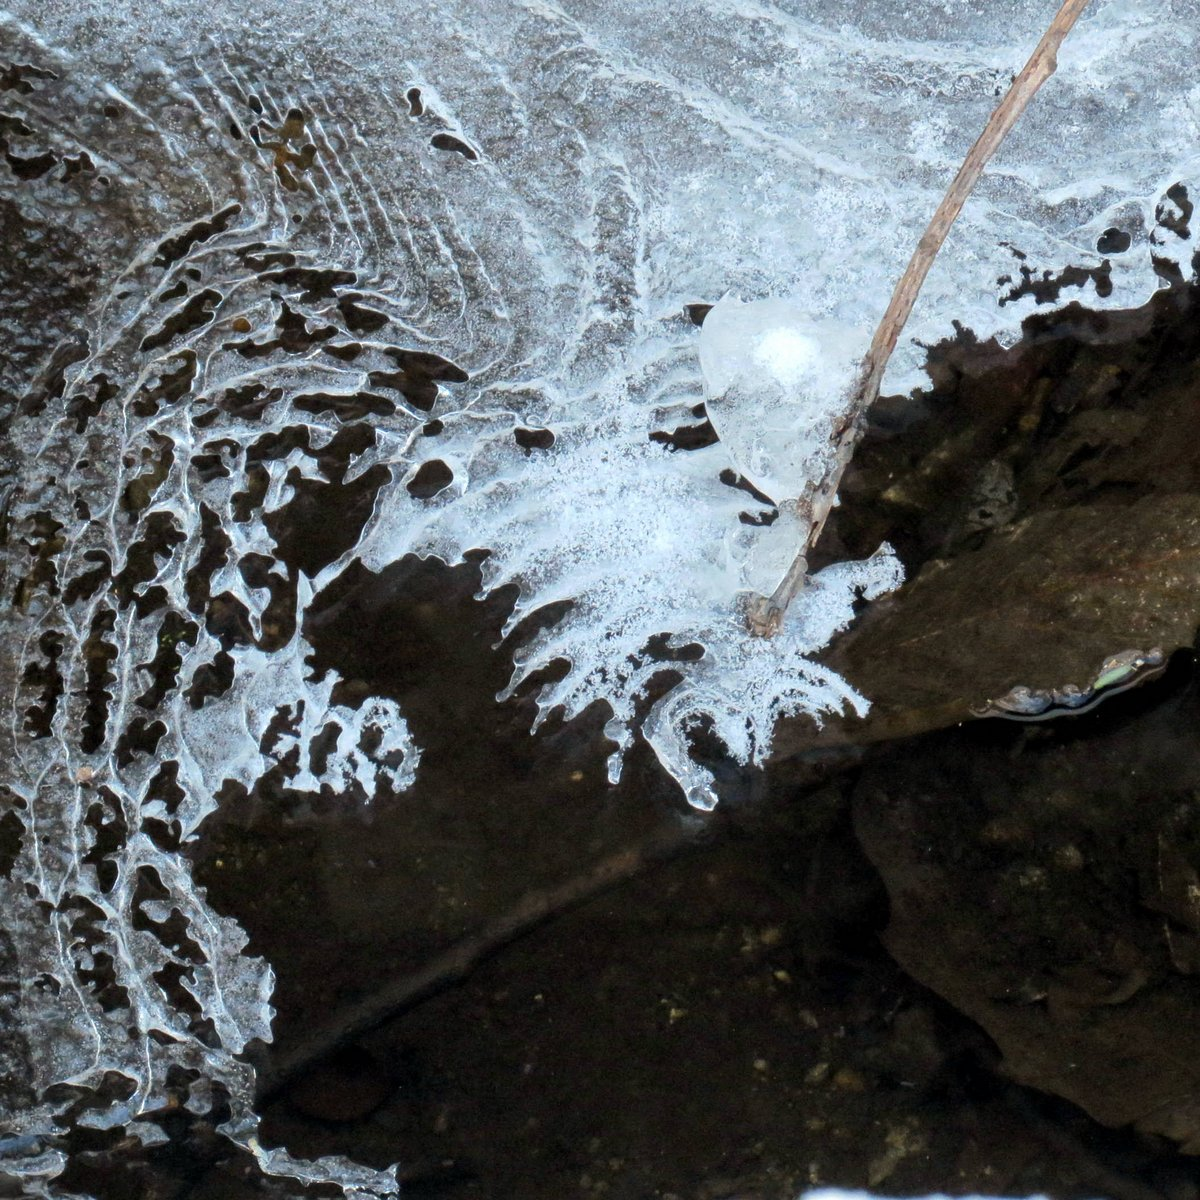 12. Ice in Drainage Ditch